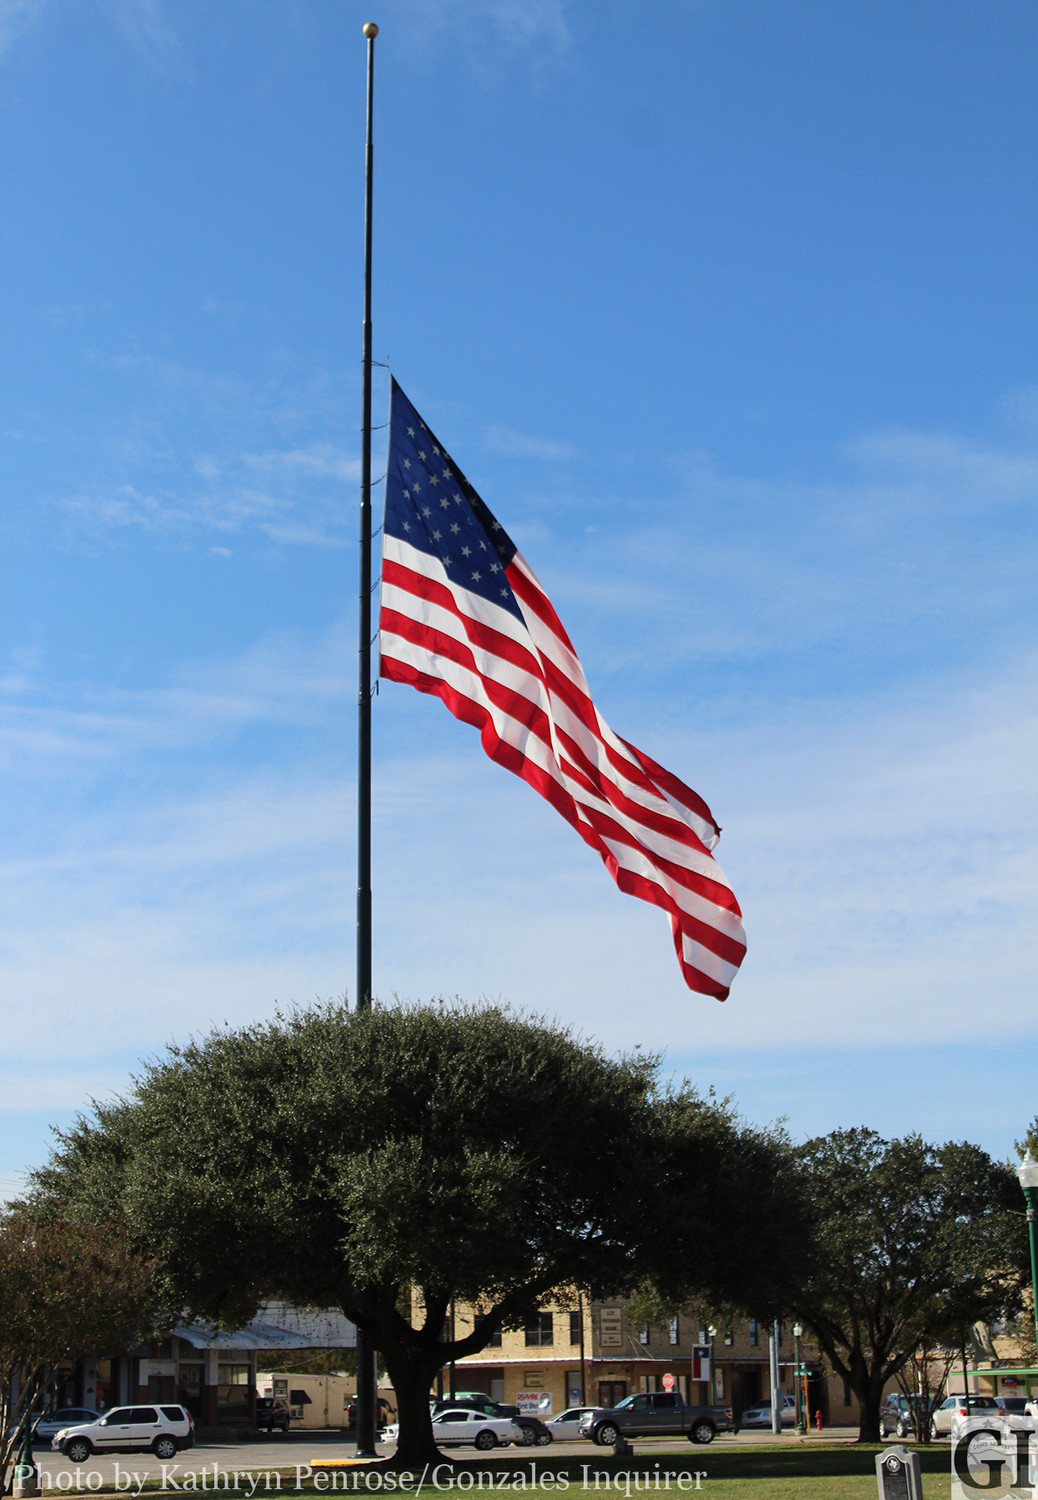 "The City of Gonzales has lowered flags to half-staff in observance of a presidential proclamation honoring the victims and families affected by the mass shooting Sunday afternoon at First Baptist Church, in Sutherland Springs. The flag will remain at half-staff until sunset, on Thursday, November 9. ""We offer our deepest sympathy for the families who lost loved ones in this tragic event,"" Gonzales Mayor Connie Kacir said."